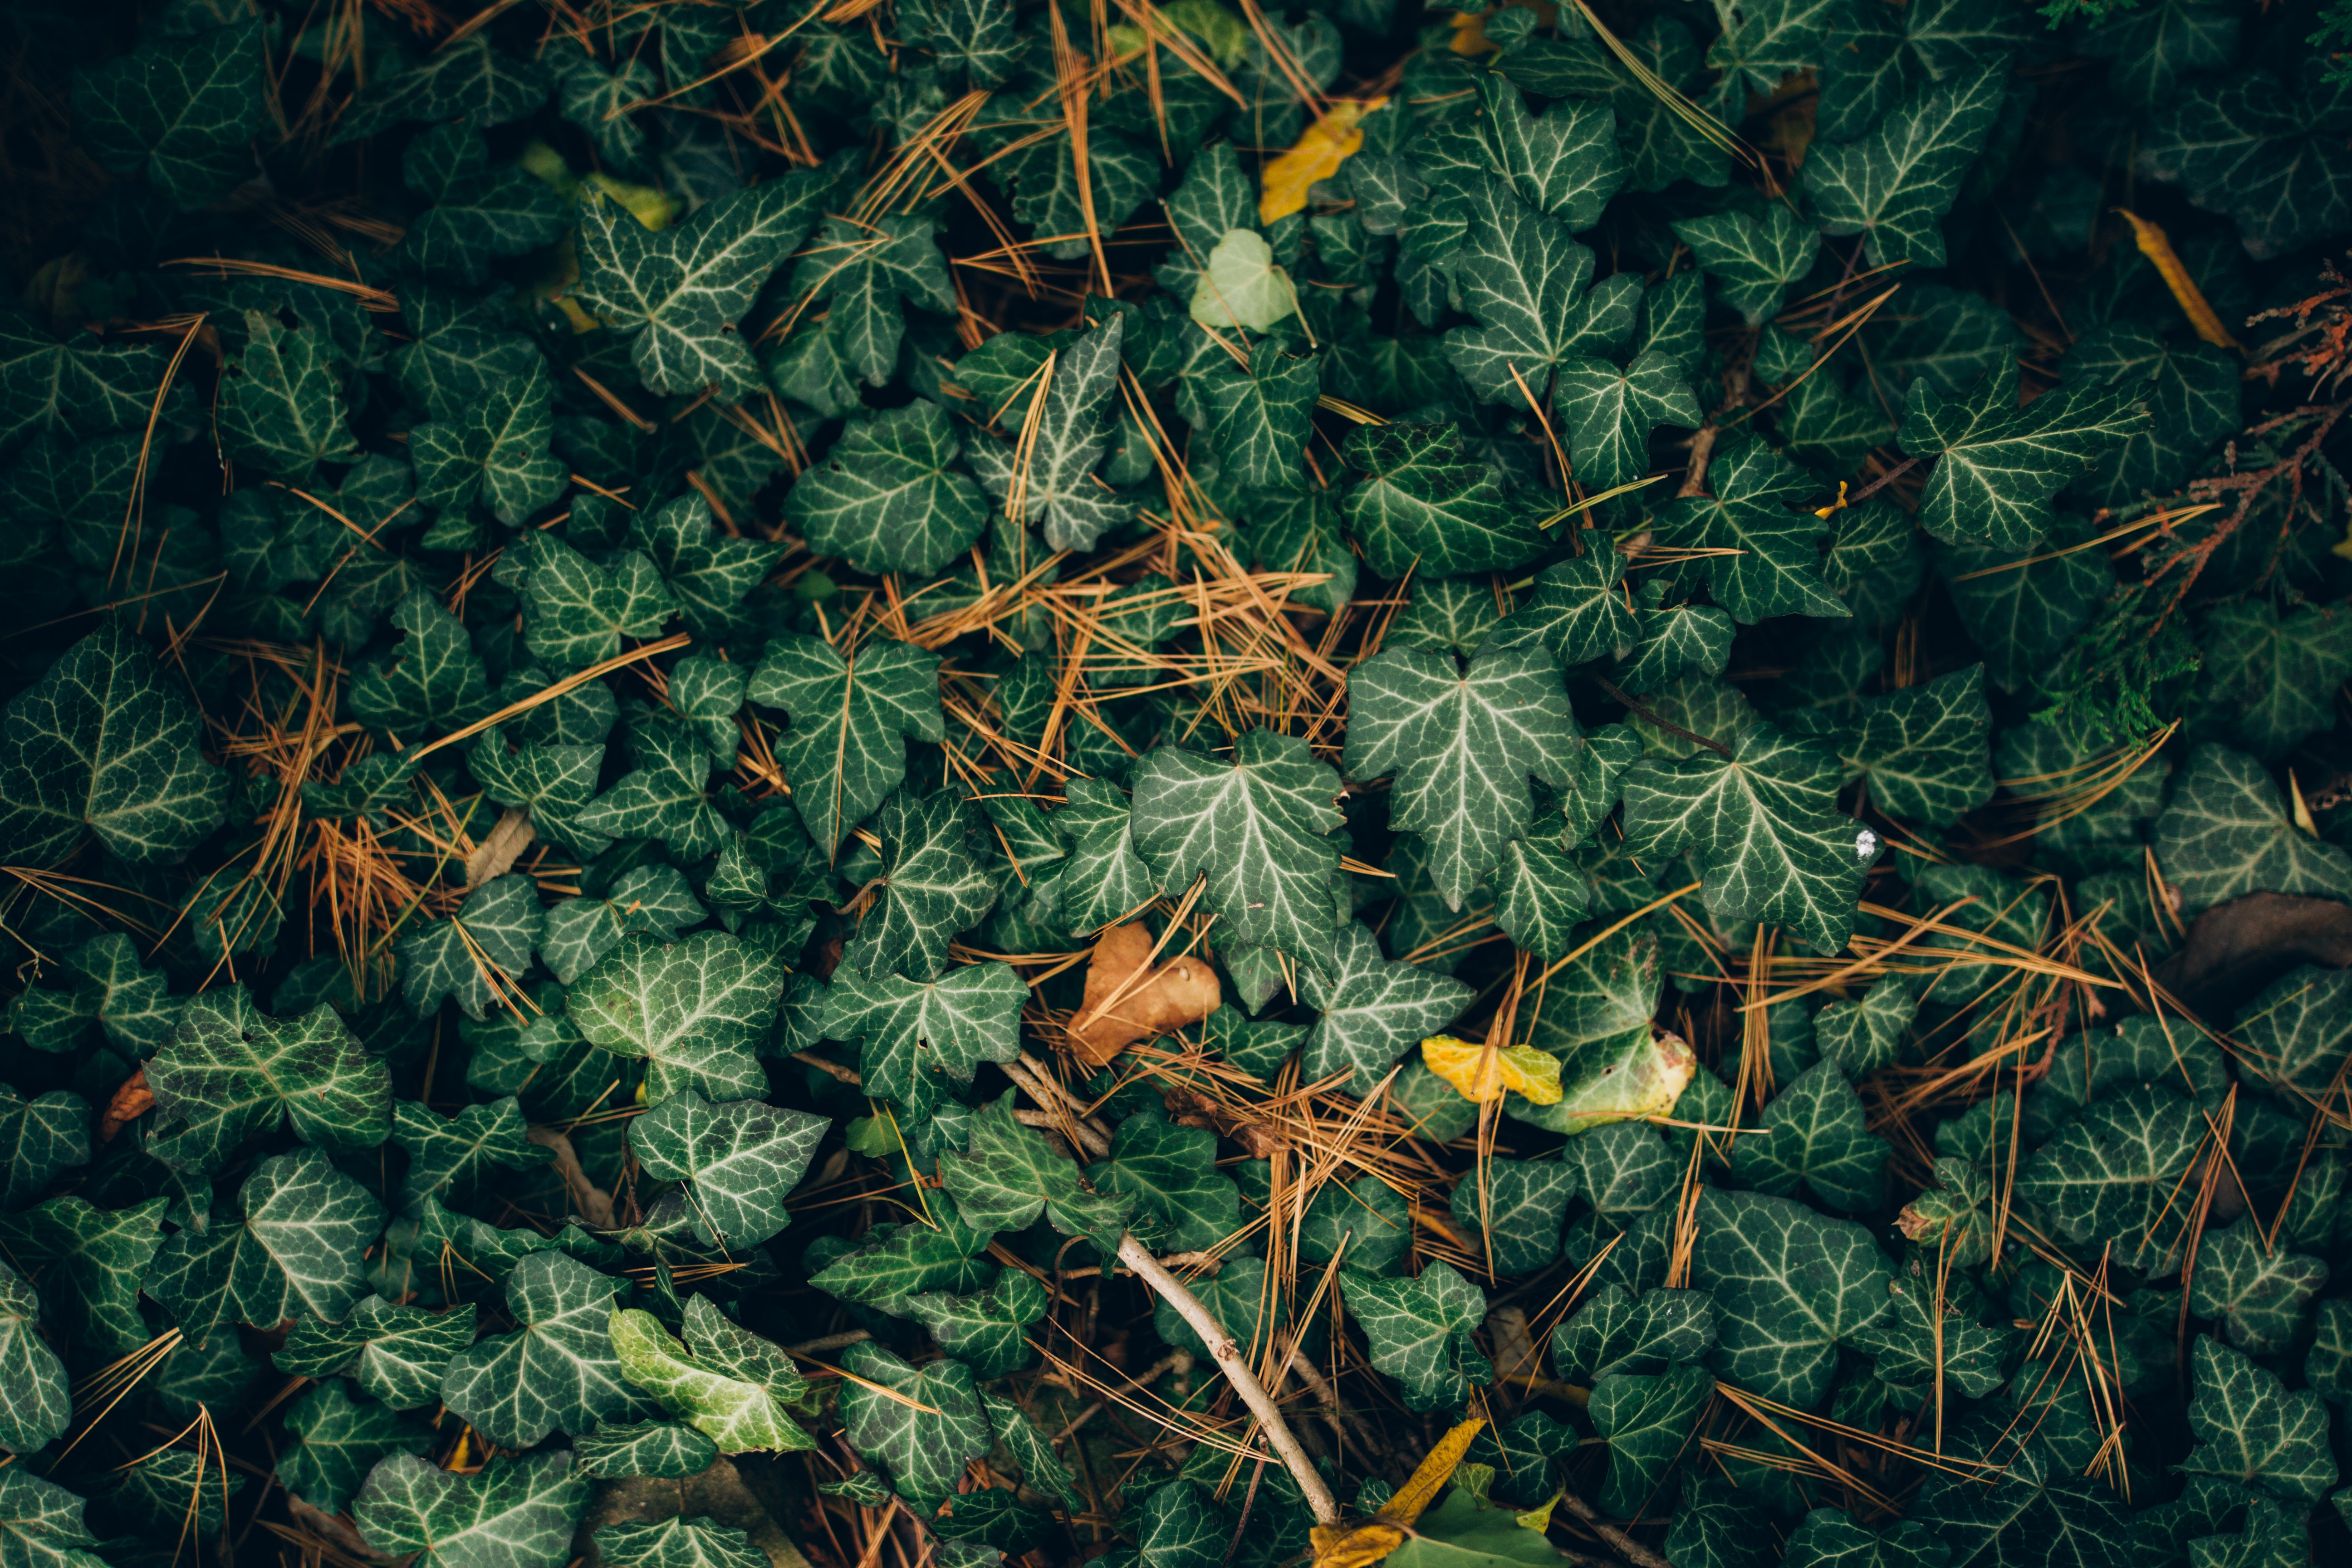 low-angle photography of green leafed plants